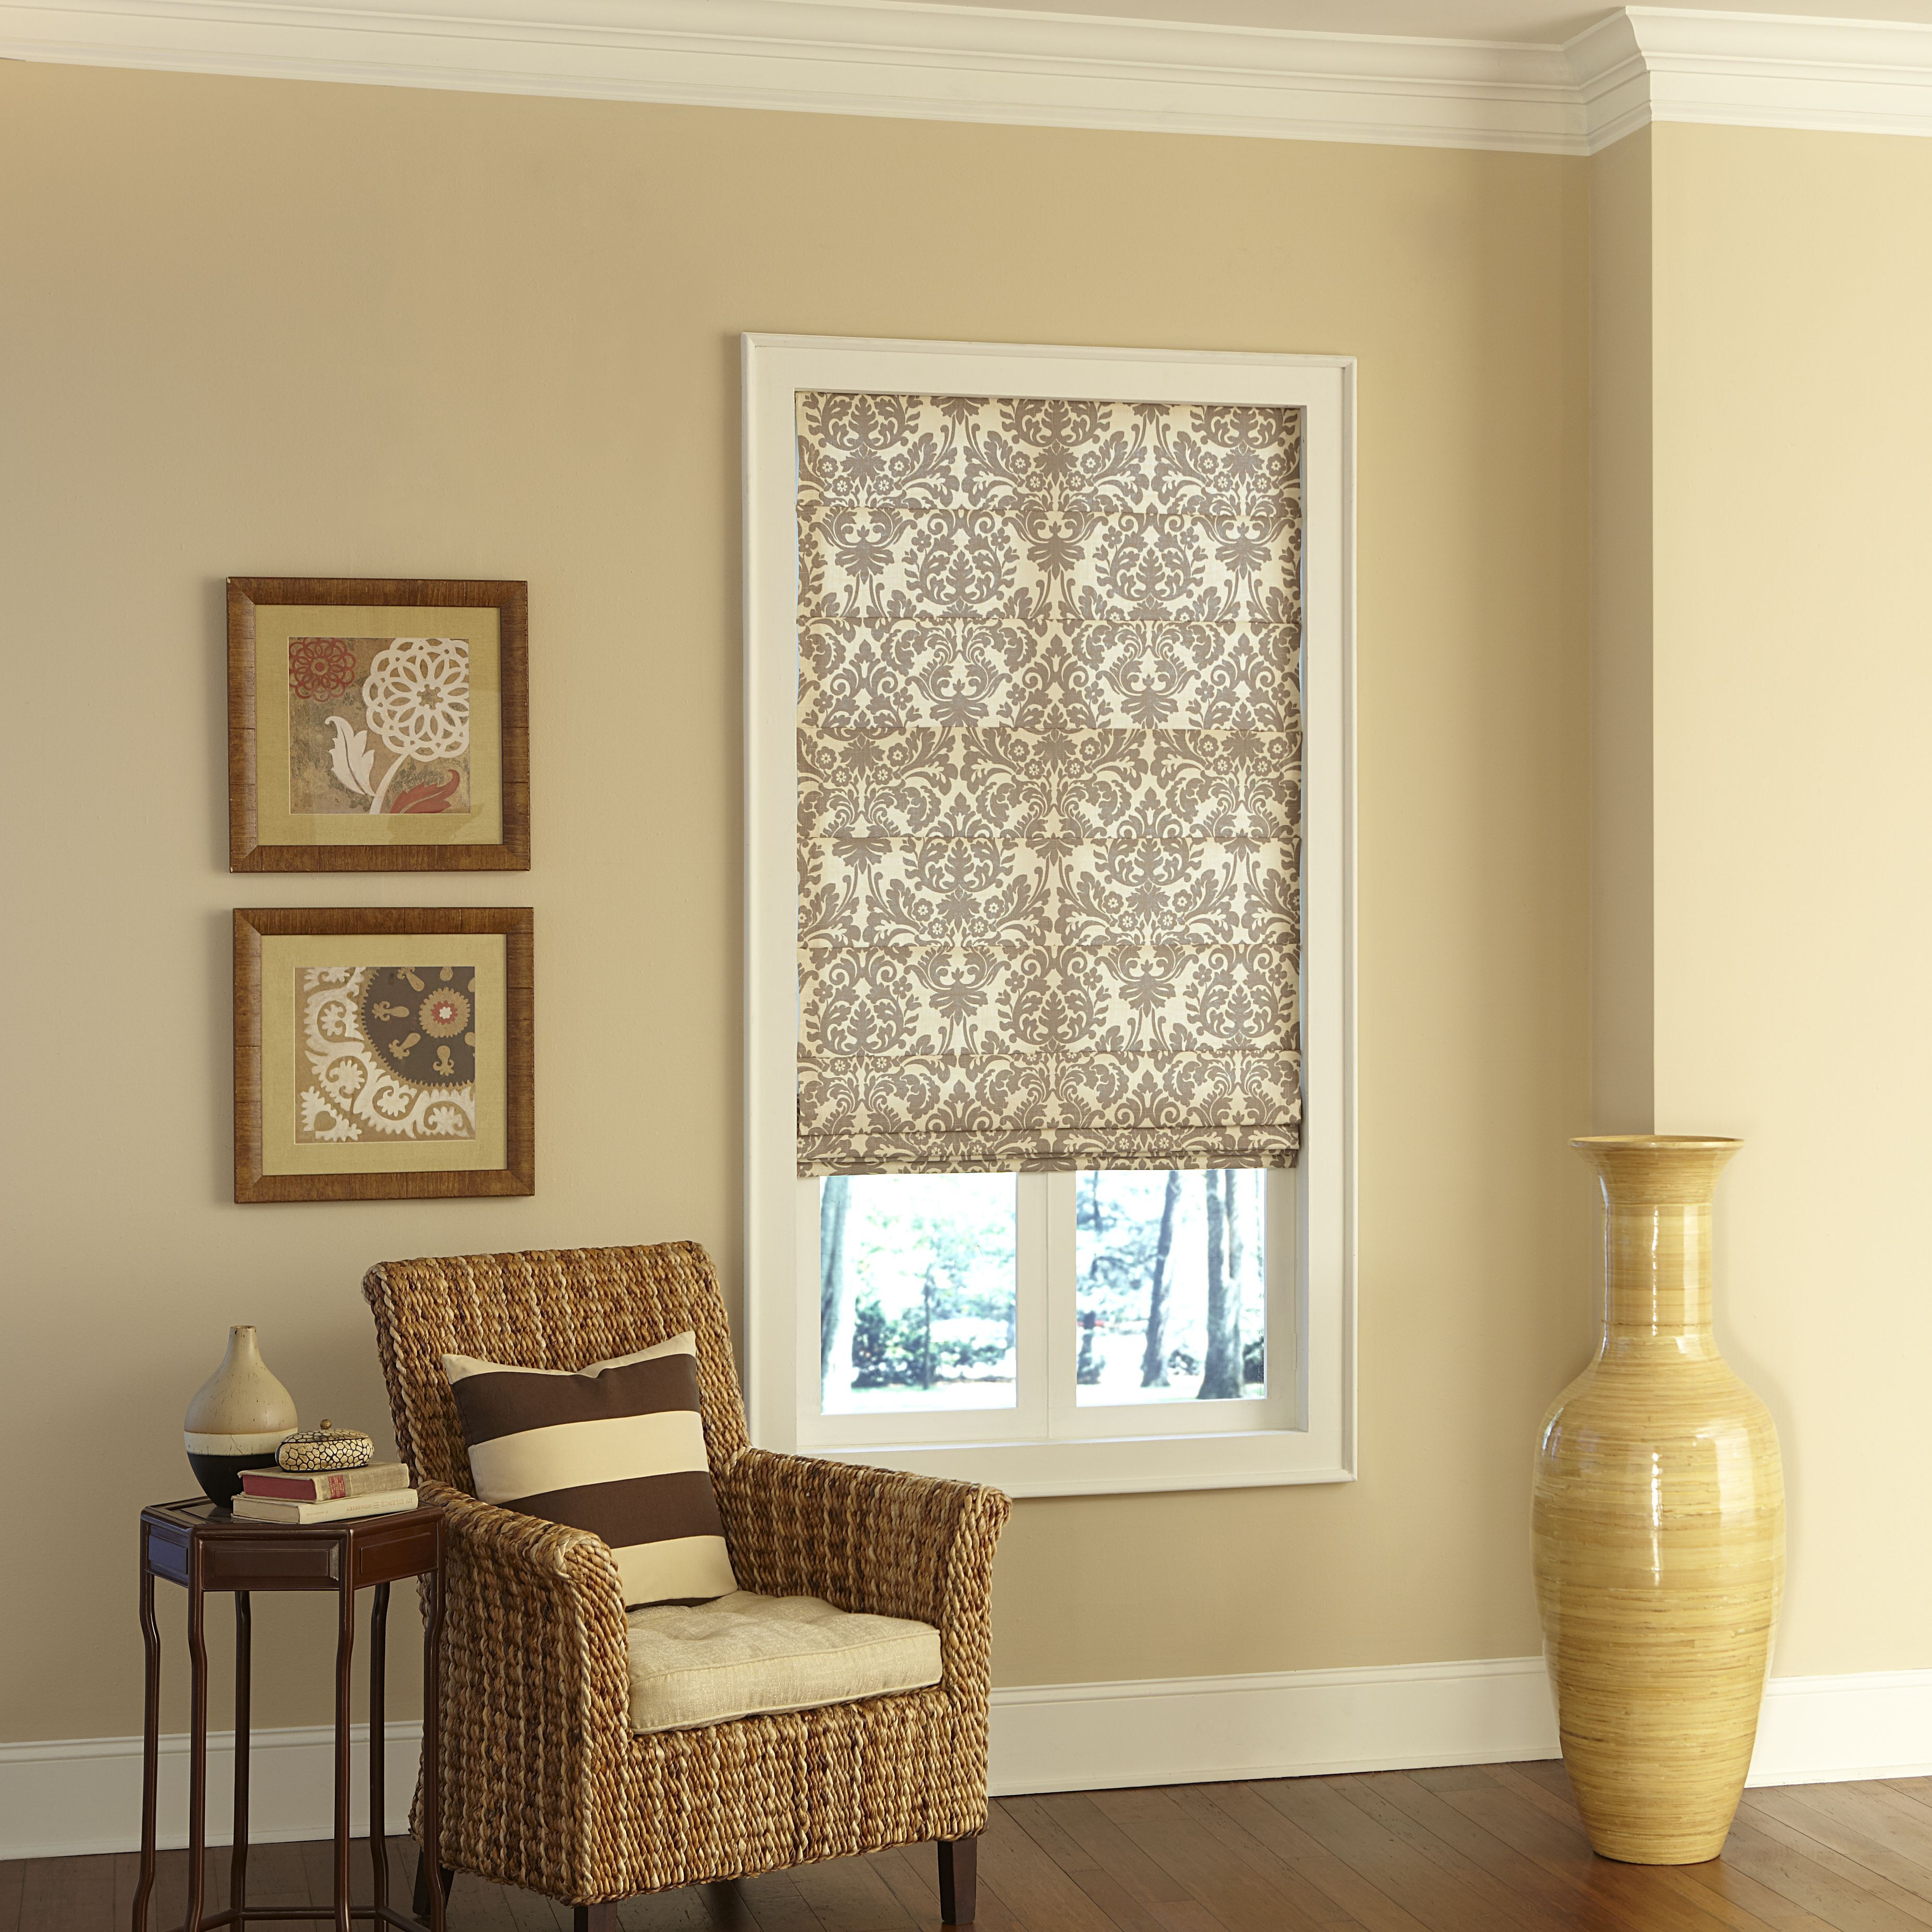 Breathtaking Window Curtain Decor With Fascinating Lowes Bali Blinds Idea Winsome Classic Roman Shade For Small White Wood Stained